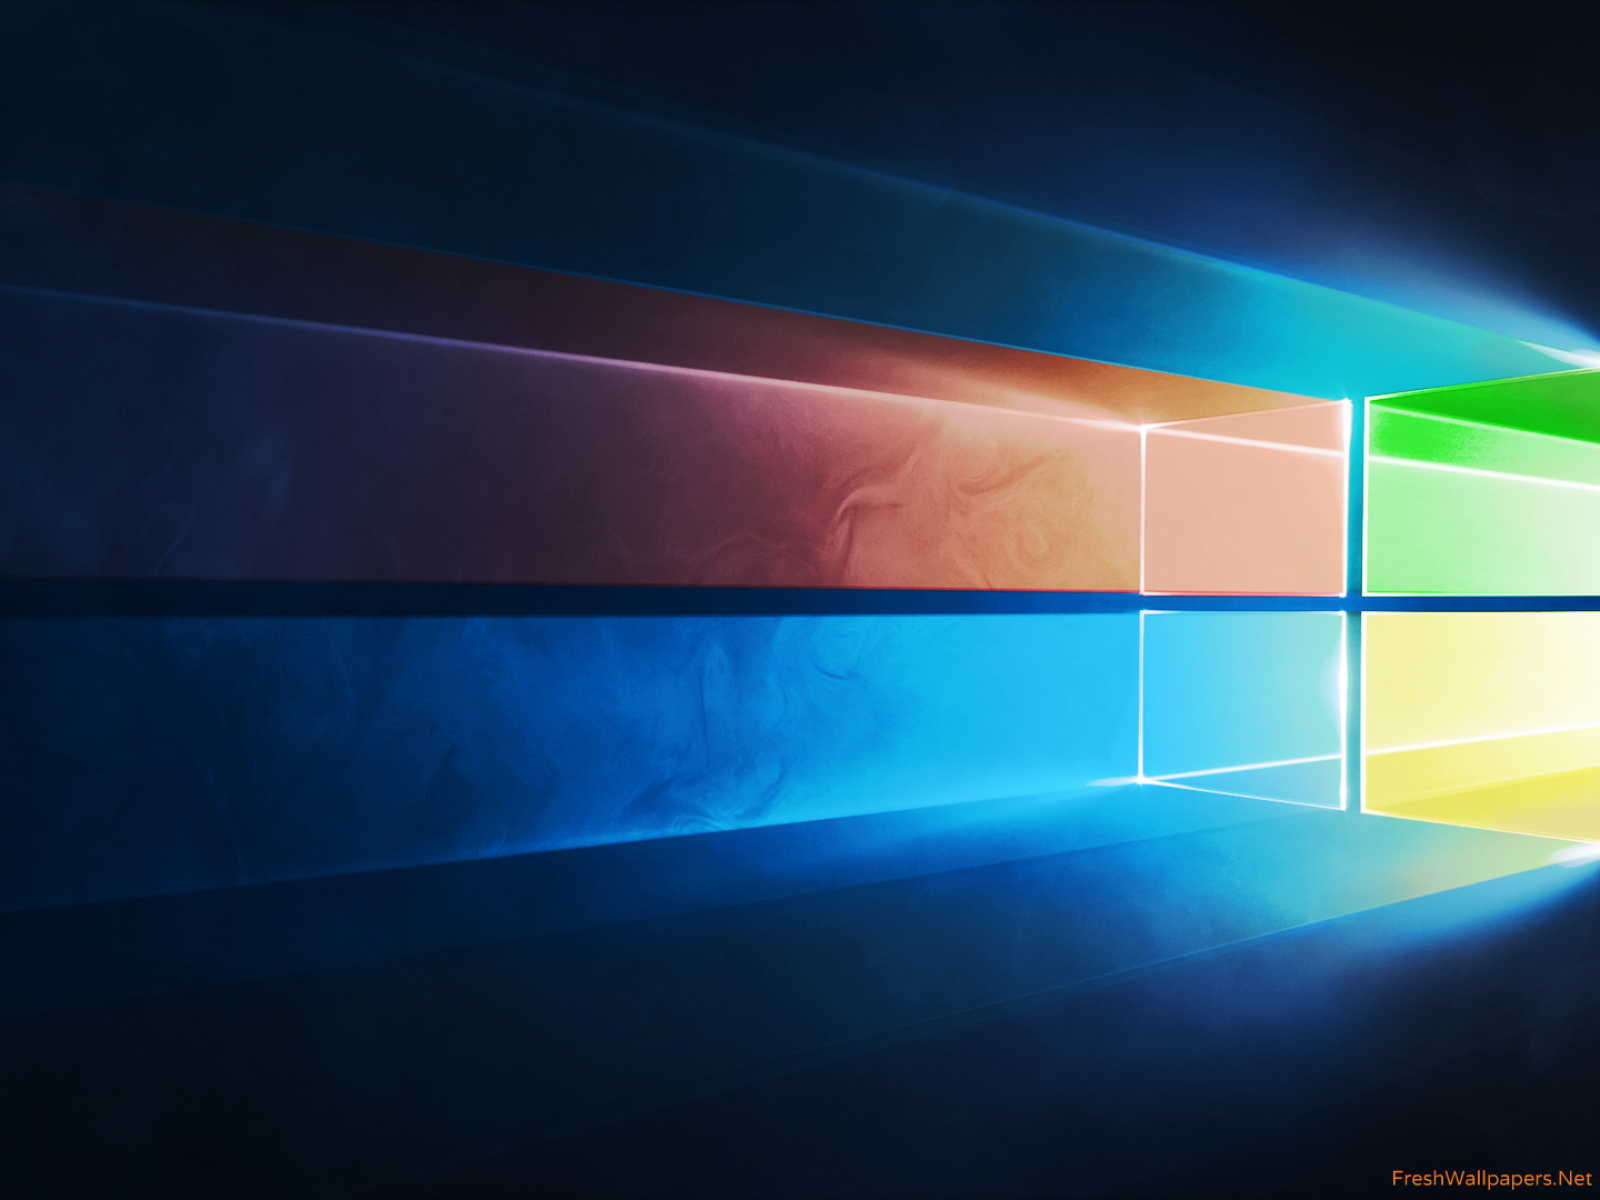 windows 10 1080p wallpapers wallpaper hd desktop 1600x1200 px 2.13